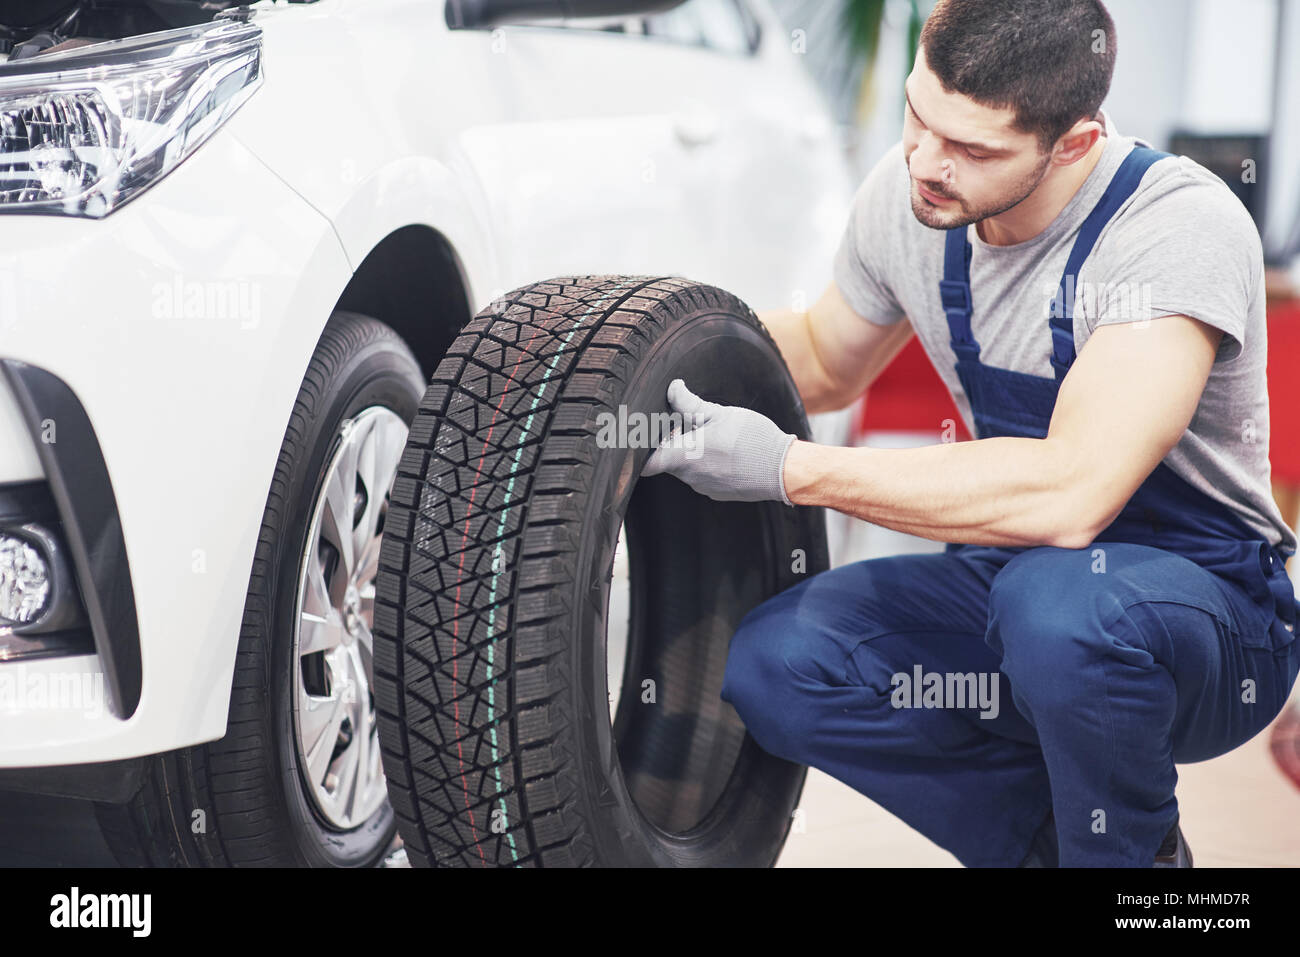 Mechanic holding a tire tire at the repair garage. replacement of winter and summer tires - Stock Image